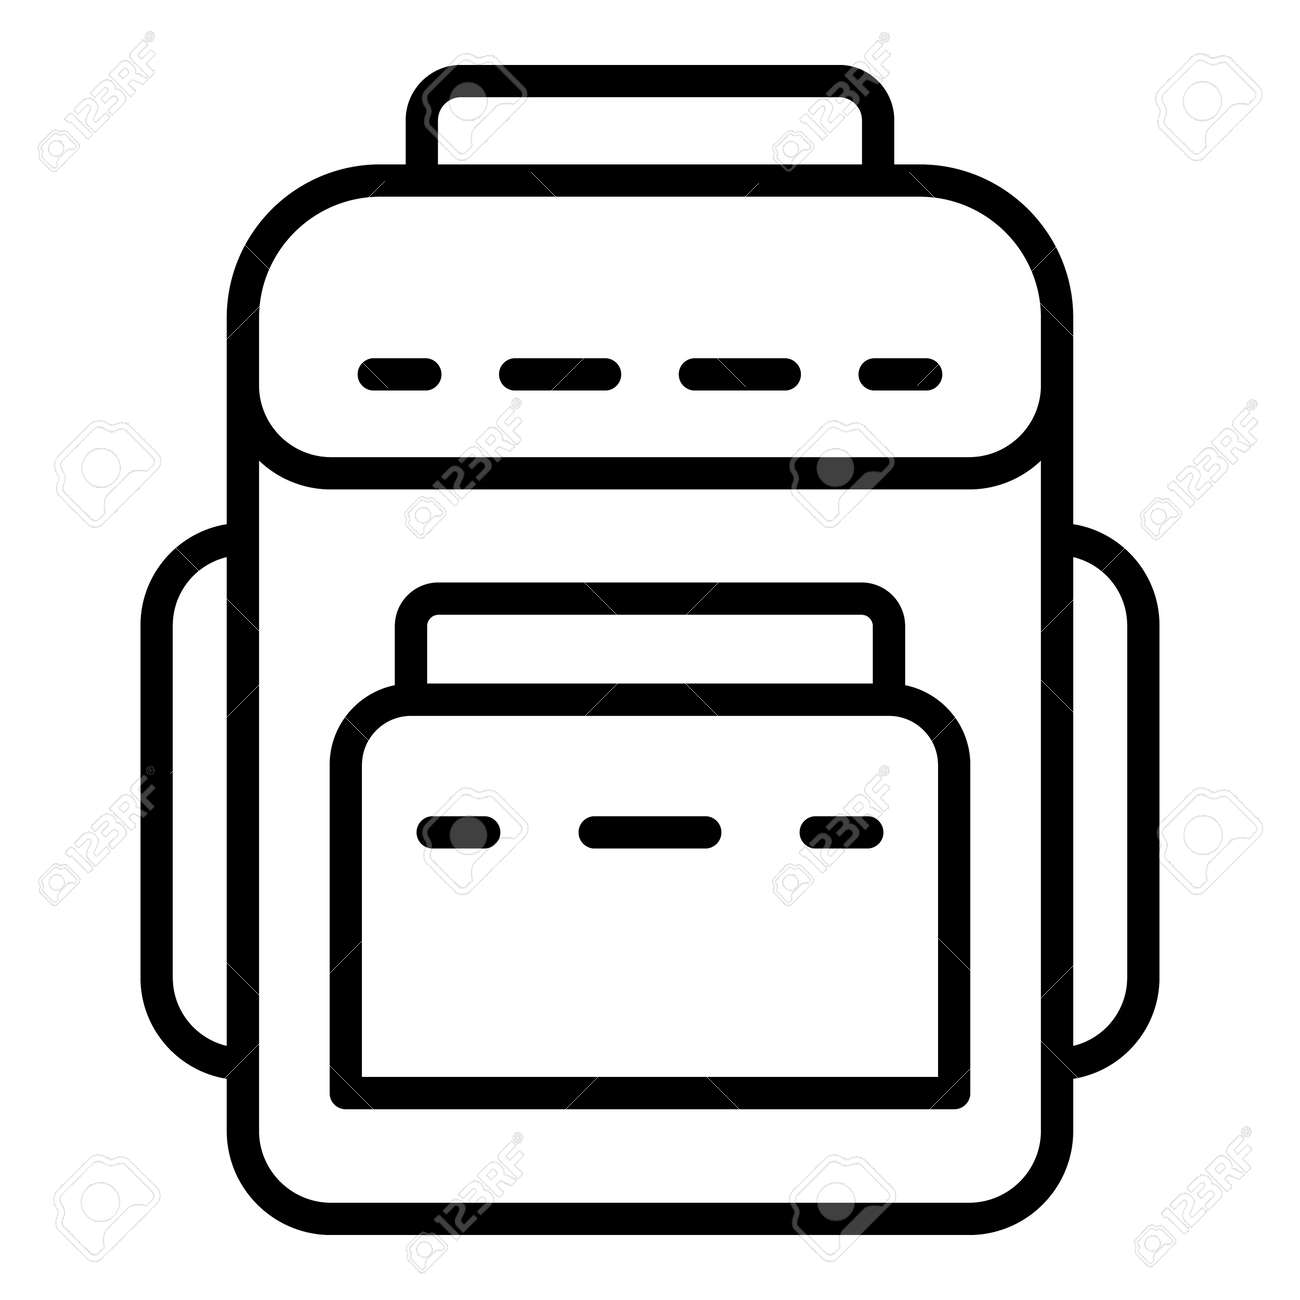 Textile backpack icon. Outline textile backpack vector icon for web design isolated on white background - 125868036